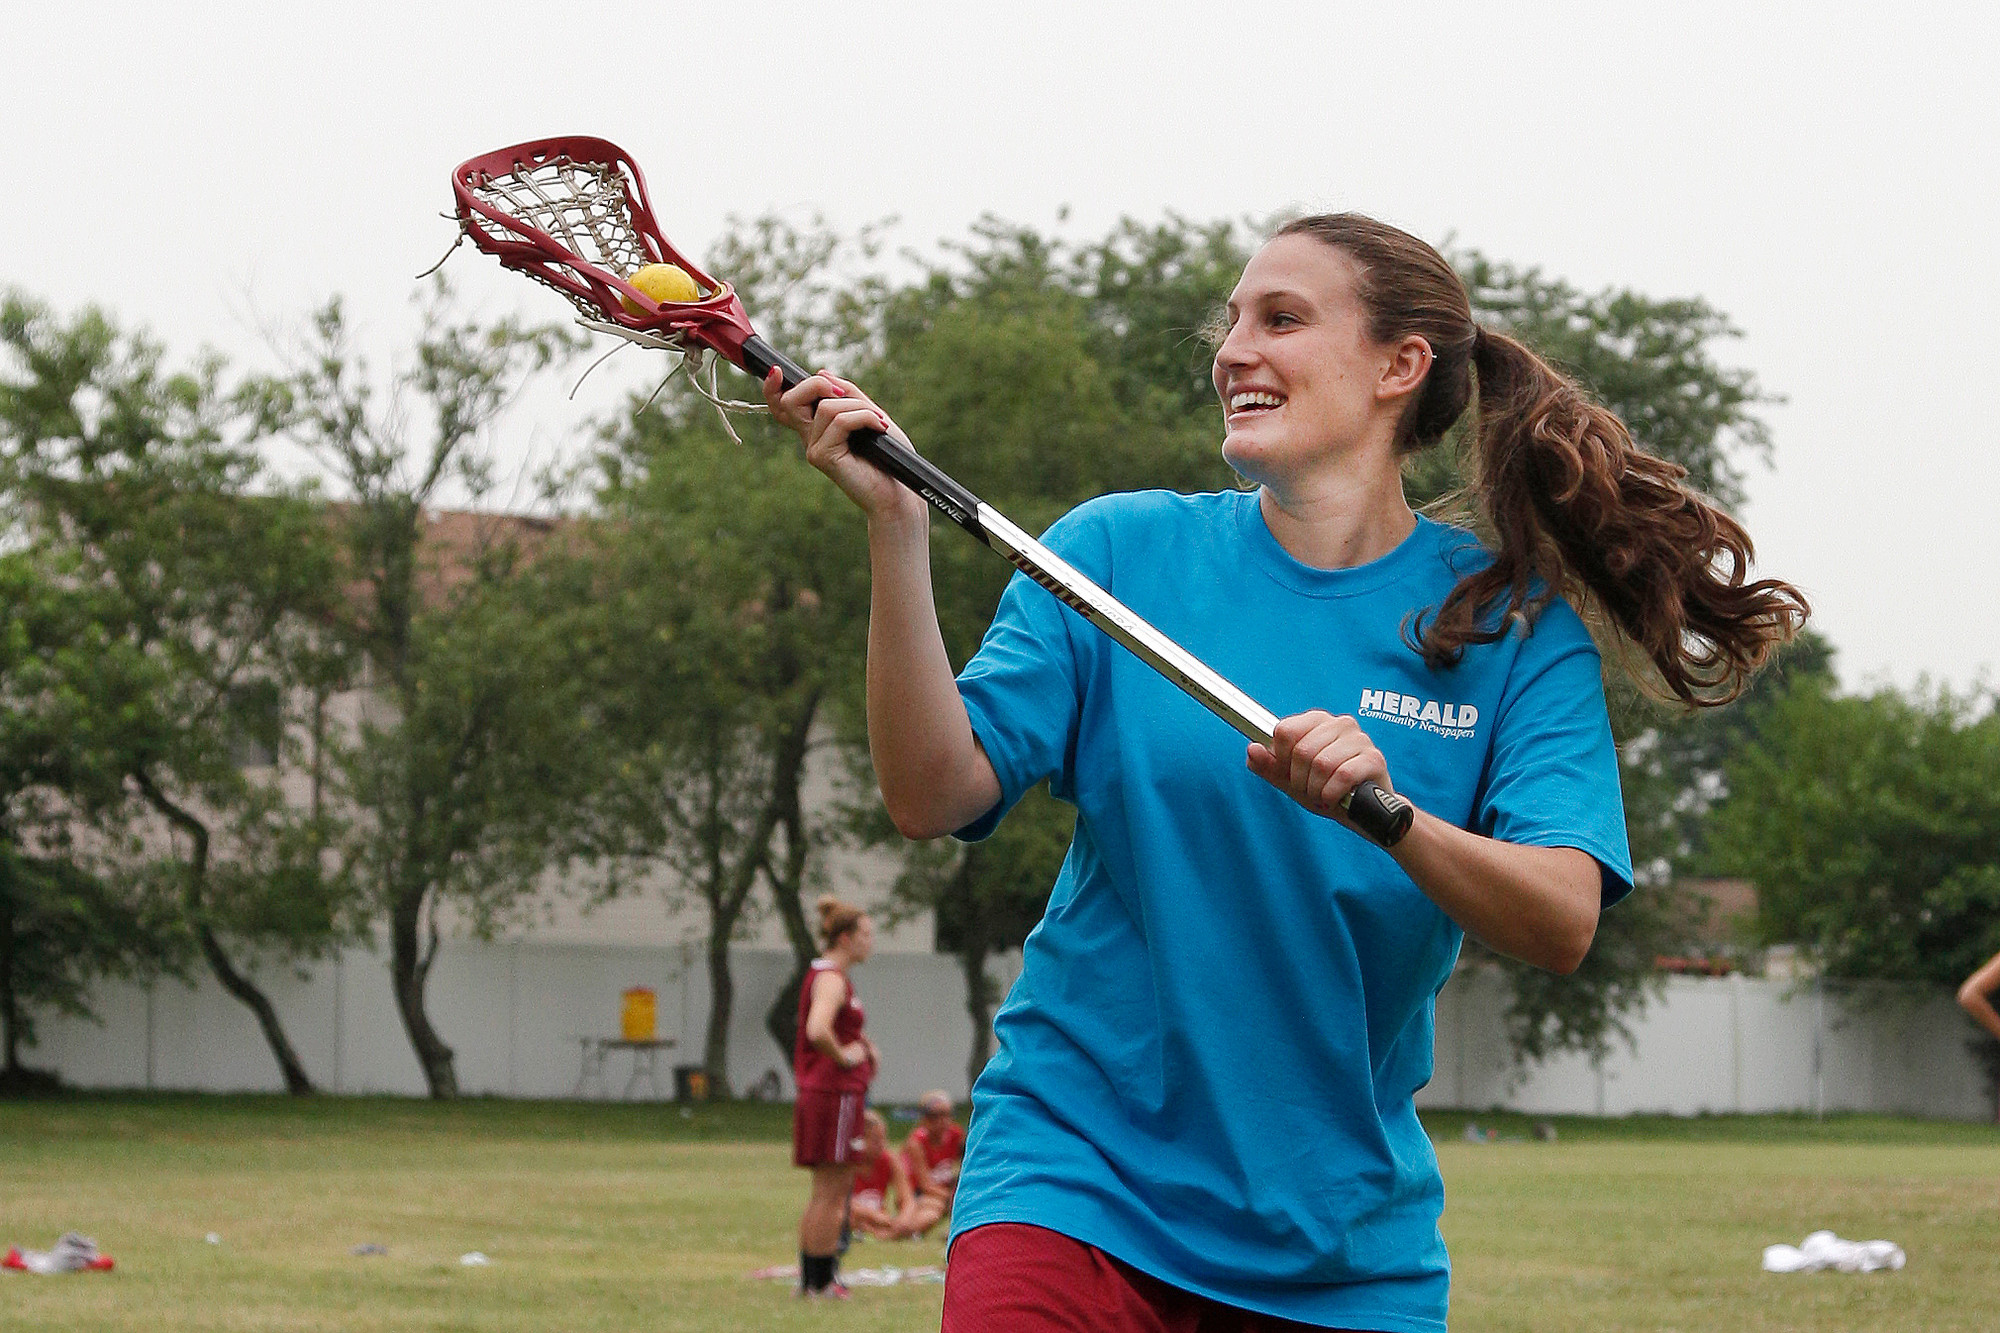 Jess Rosen, a Lynbrook High School graduate, tried her hand at lacrosse for the first time during the Town of Hempstead's summer clinic.